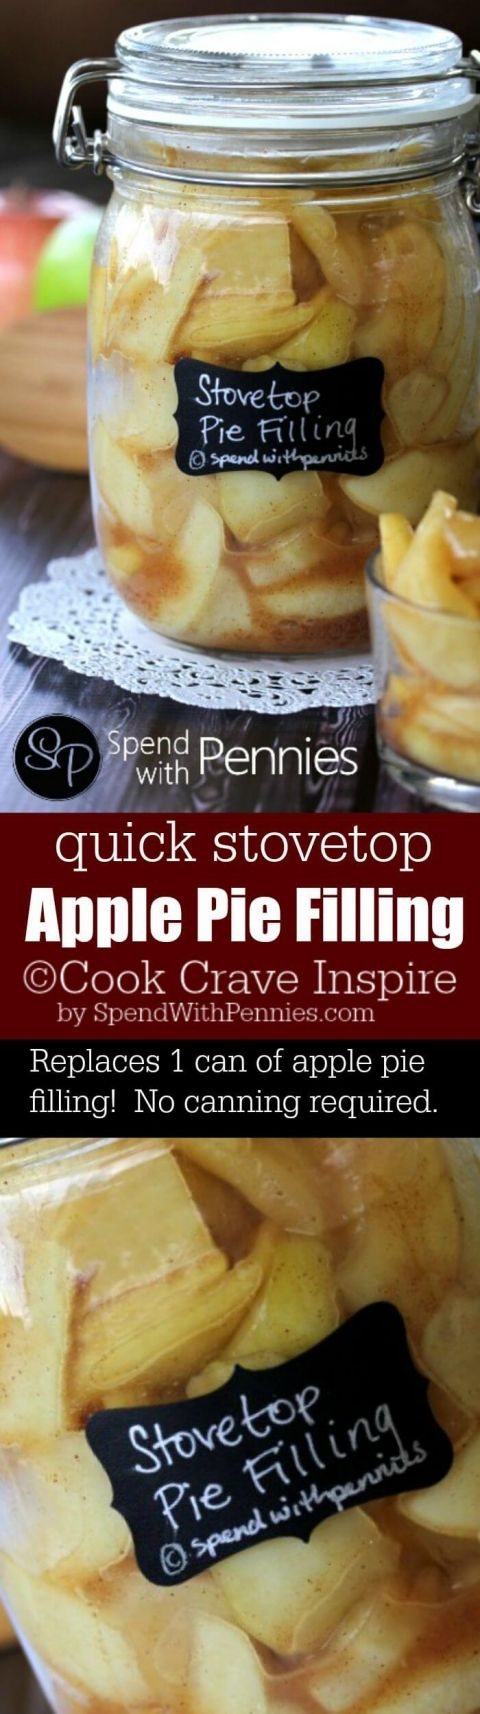 Easy Apple Pie Filling on the stove top!  This apple pie recipe replaces the usual canned apple pie filling and tastes so much better!